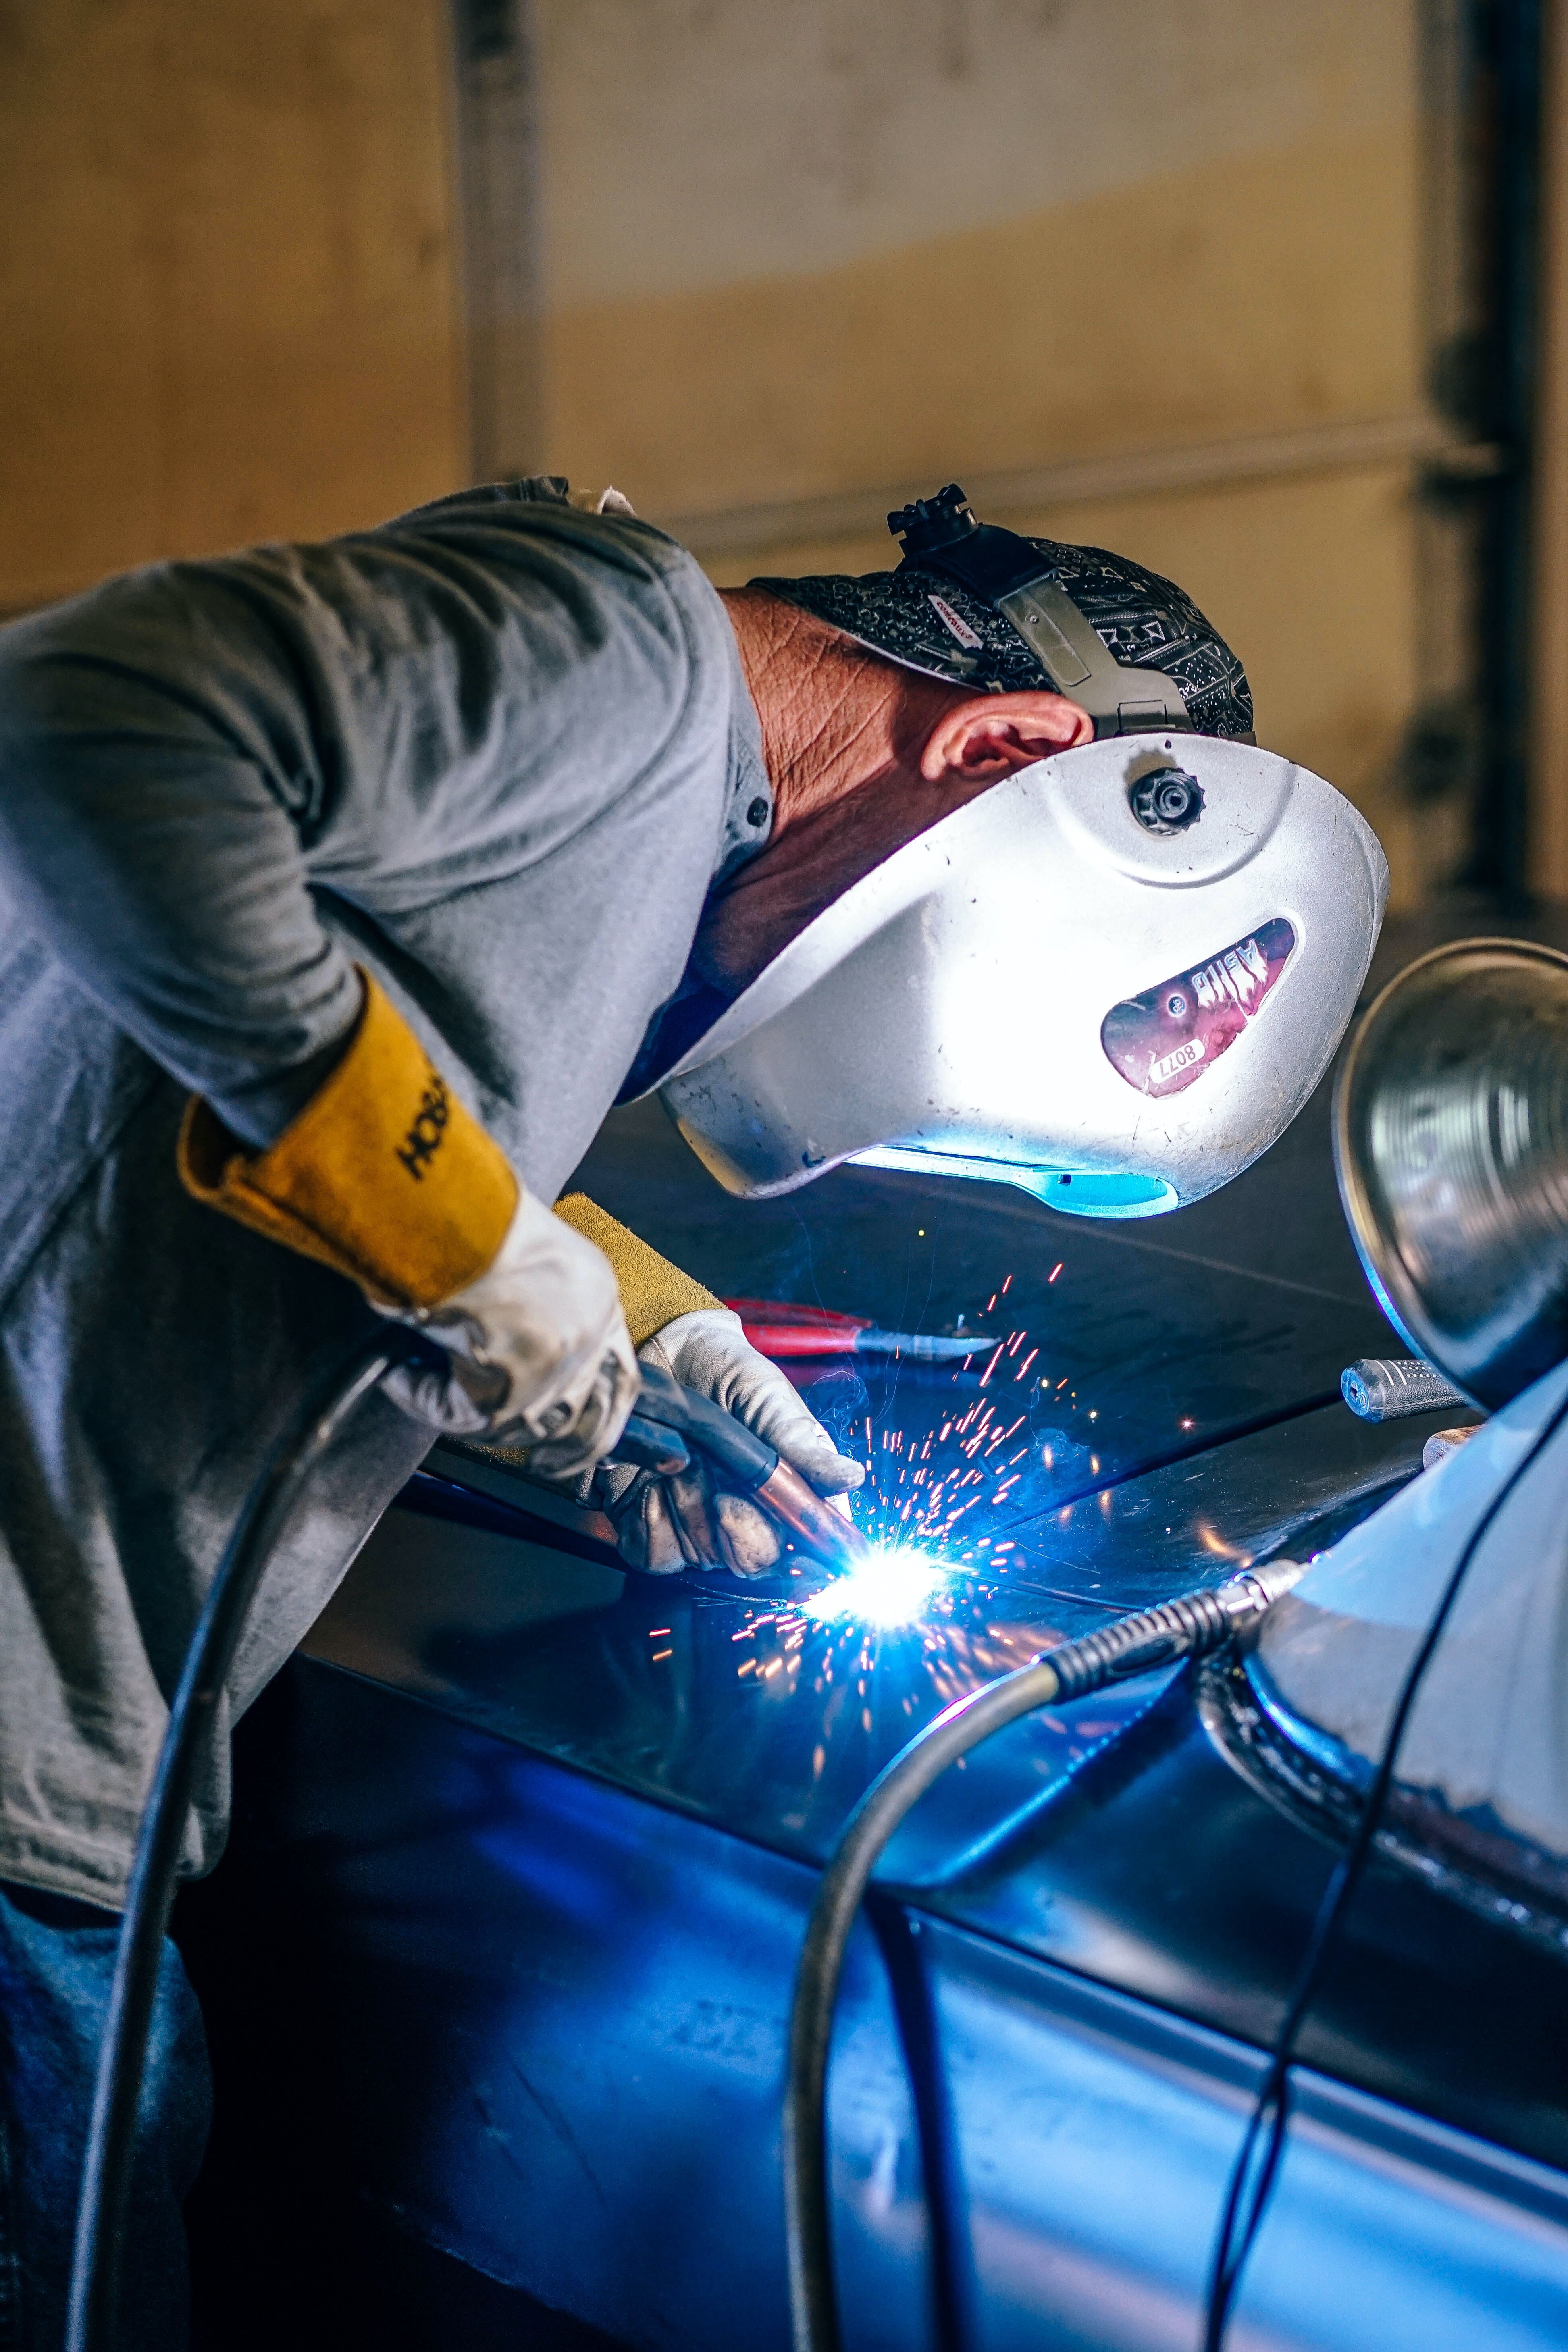 person with mask welding on vehicle